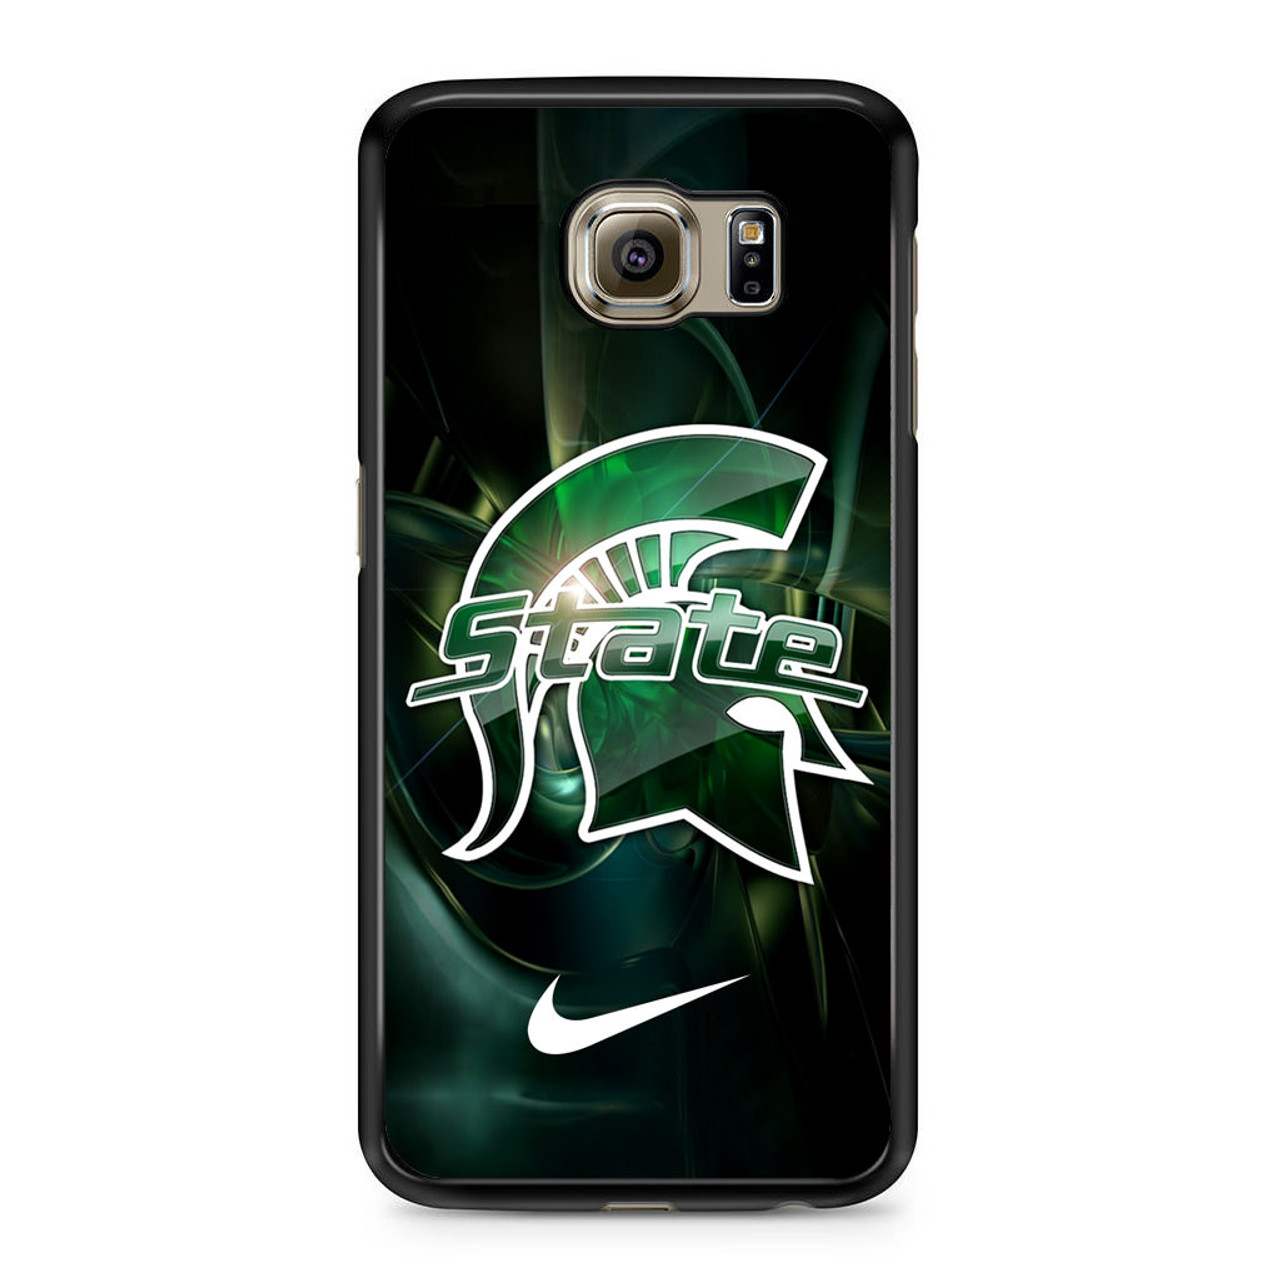 finest selection 00569 f57bc Michigan State Nike Samsung Galaxy S6 Case